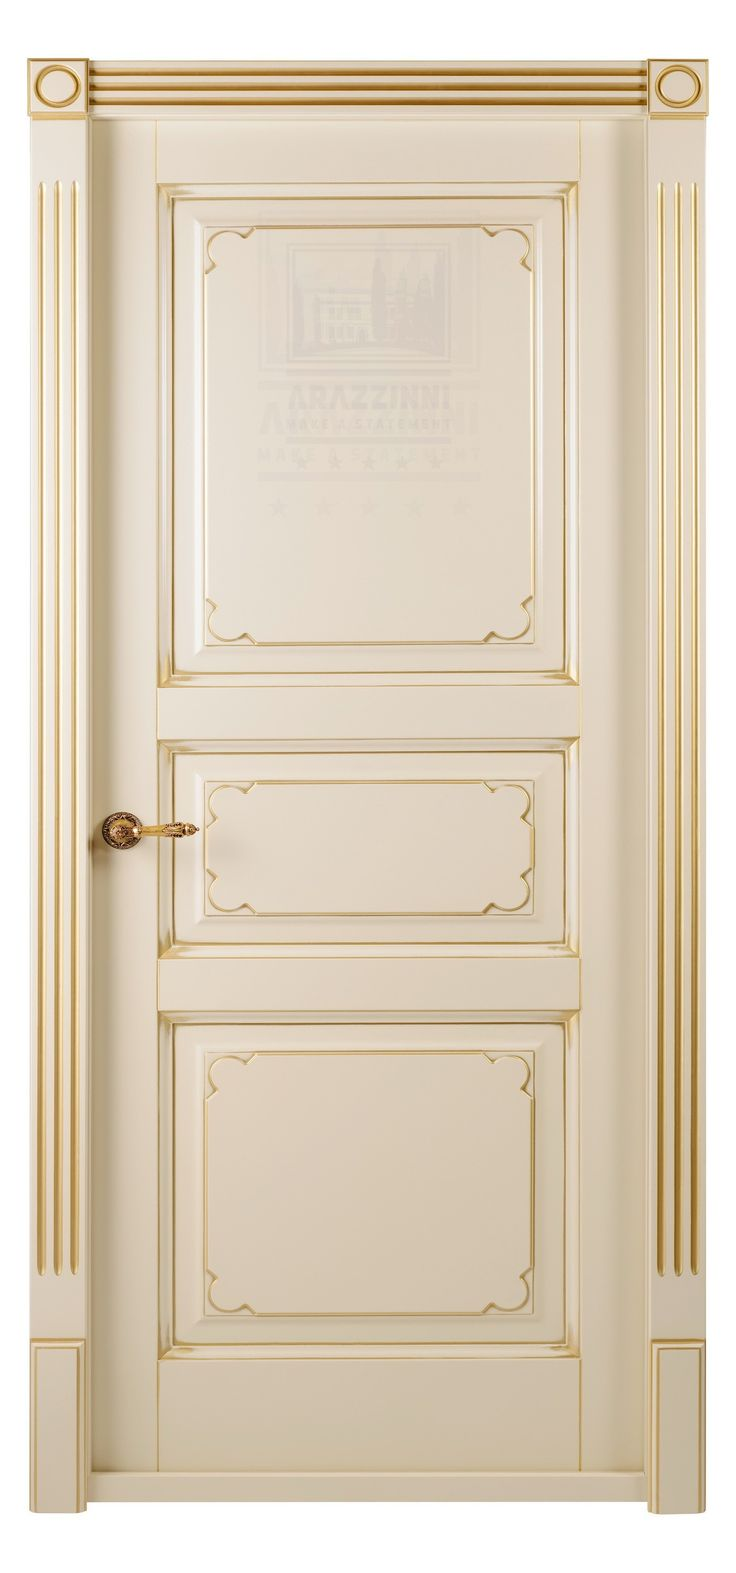 10 best Traditional Interior Doors images on Pinterest | Traditional ...